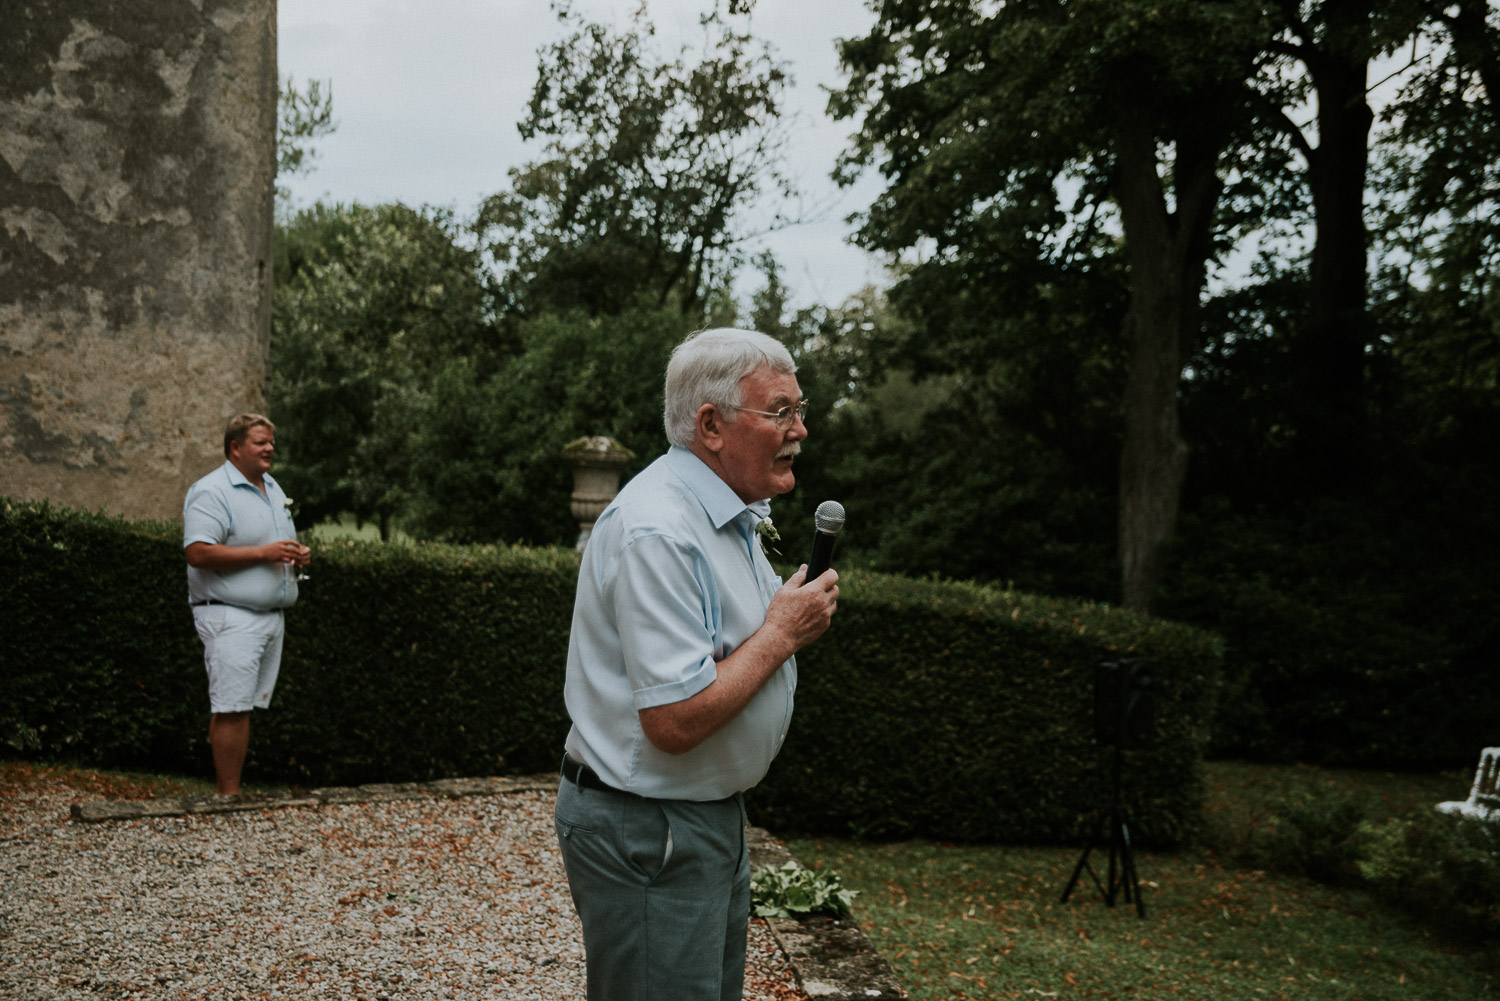 chateau_la_commanderie_mirepoix__wedding_katy_webb_photography_france_UK147